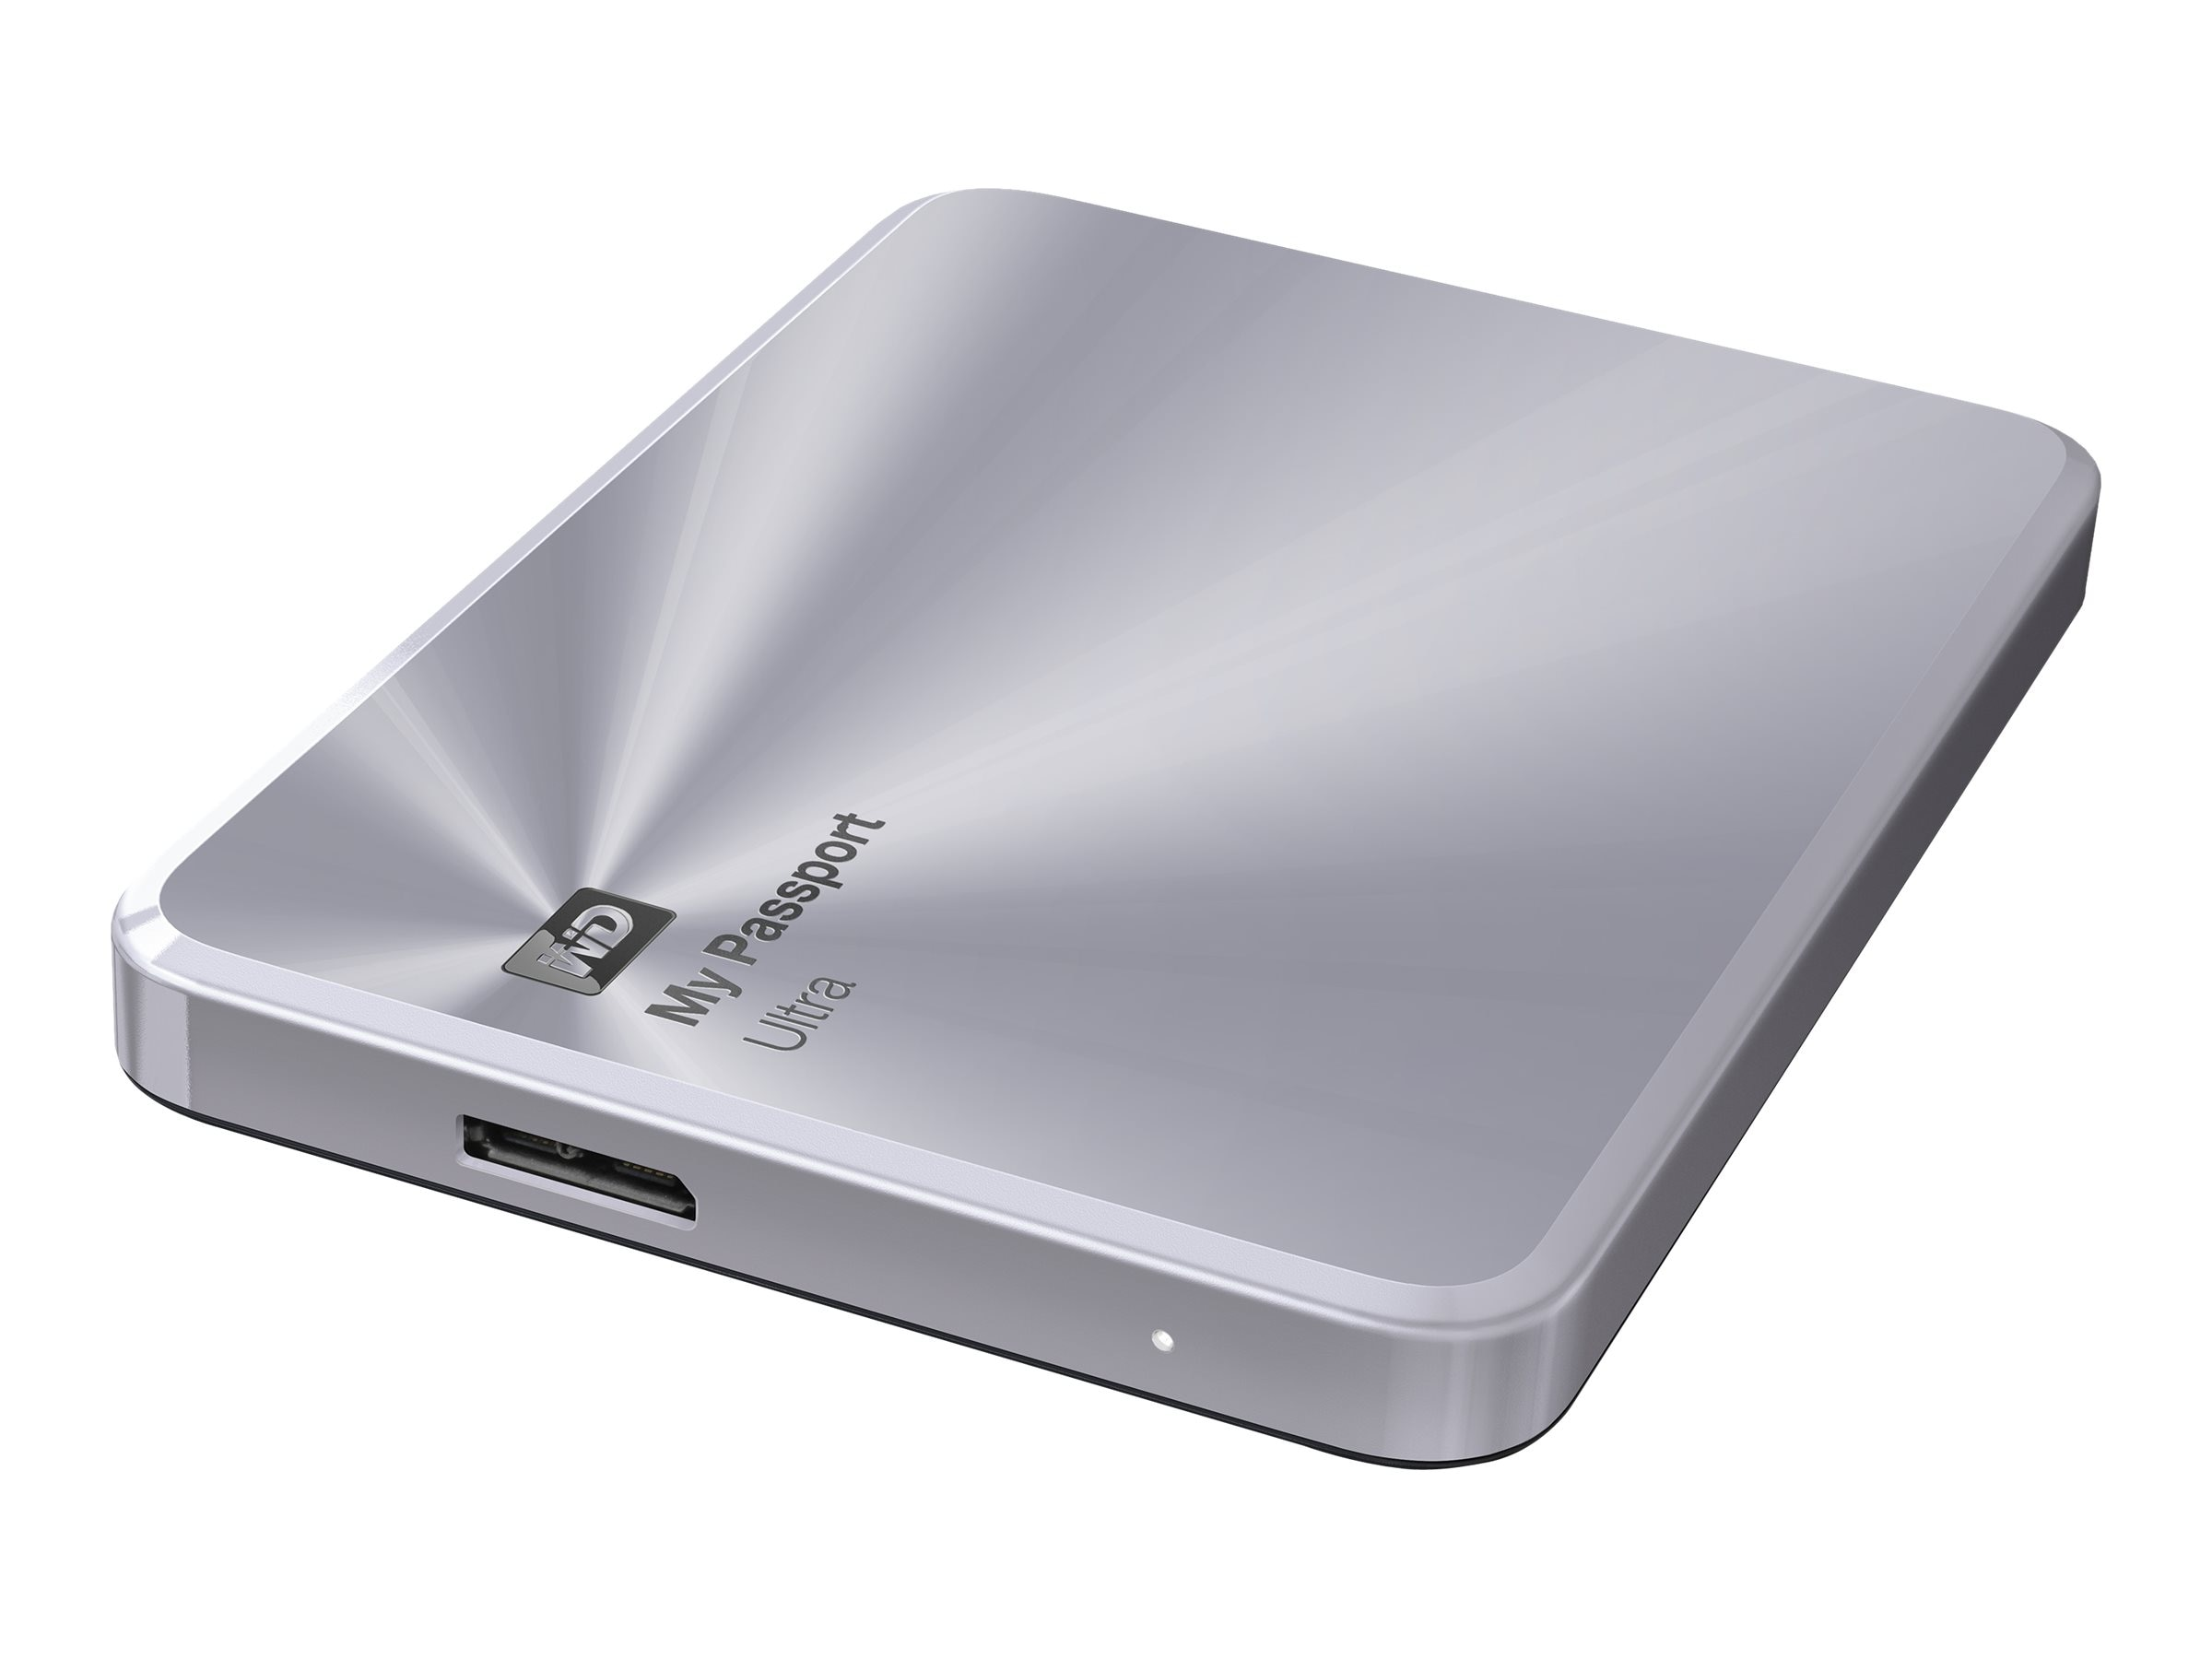 WD 2TB My Passport Ultra Metal Edition USB 3.0 Portable Hard Drive - Silver, WDBEZW0020BSL-NESN